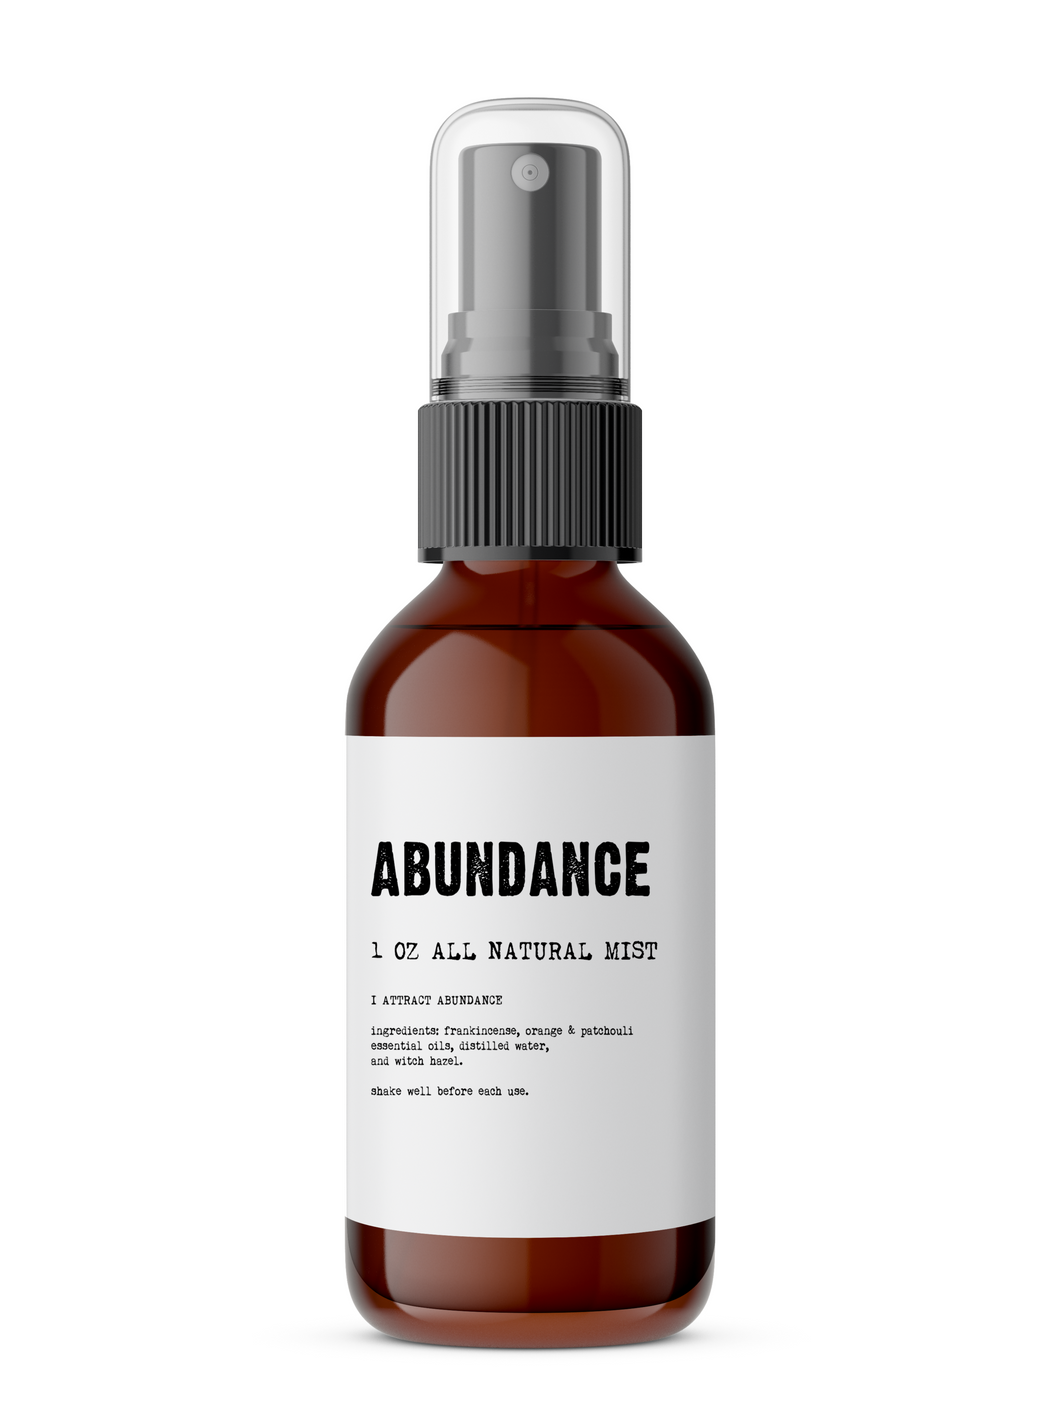 Abundance - Meditation/Body Mist - Made with All Natural Ingredients